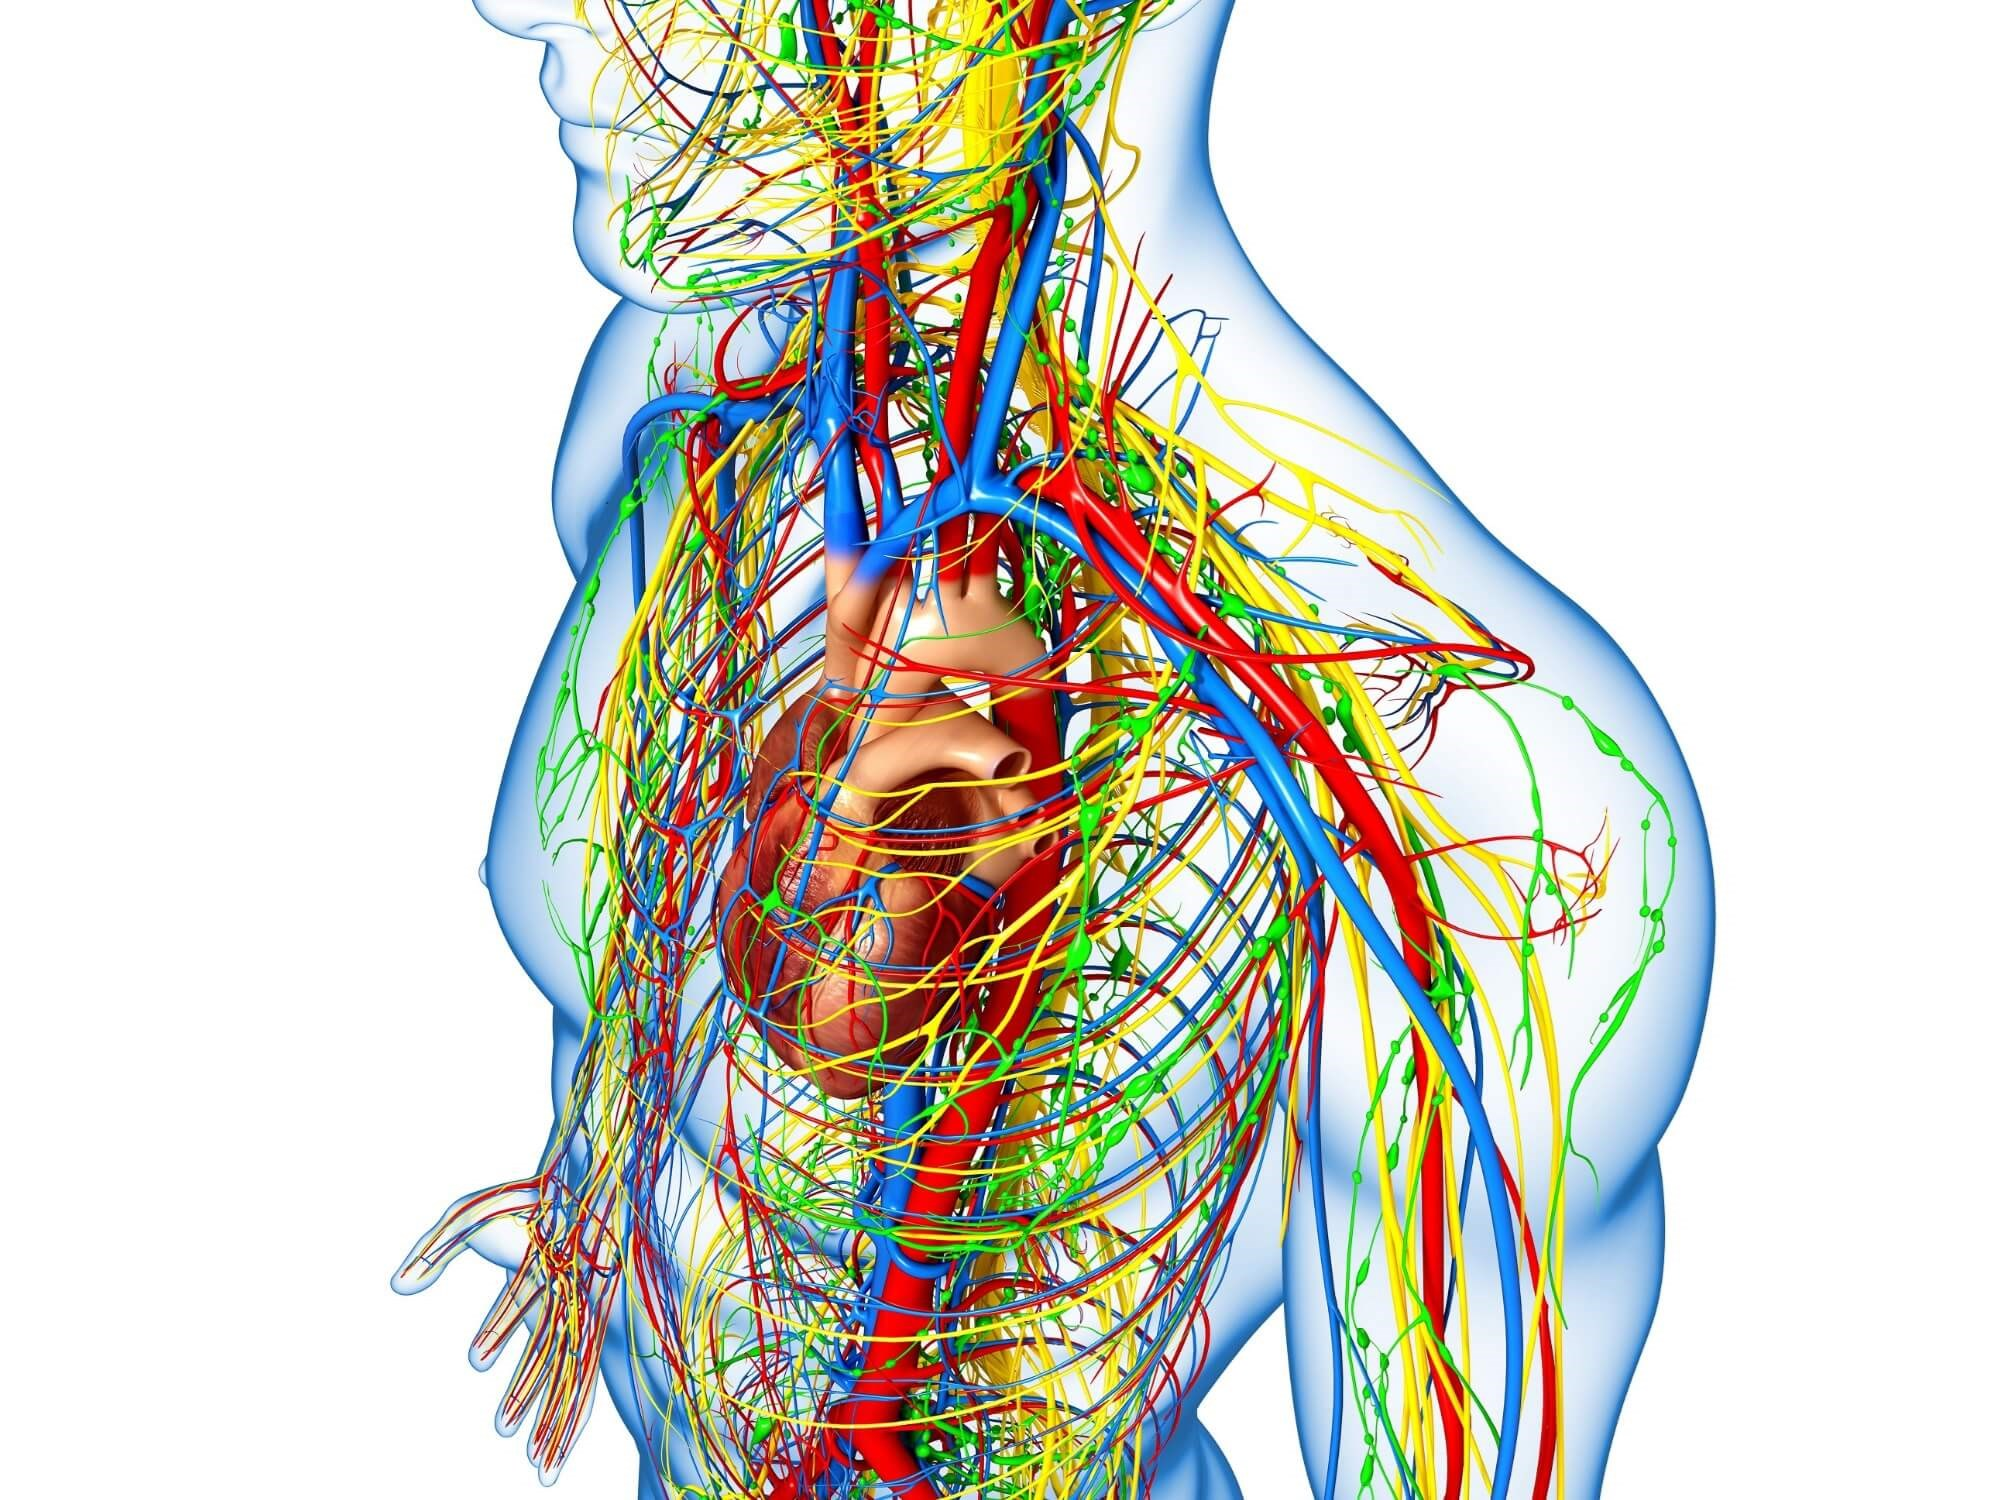 Hyperglycemia, obesity, and hypertriglyceridemia are negatively related to cardiovascular autonomic neuropathy indices.